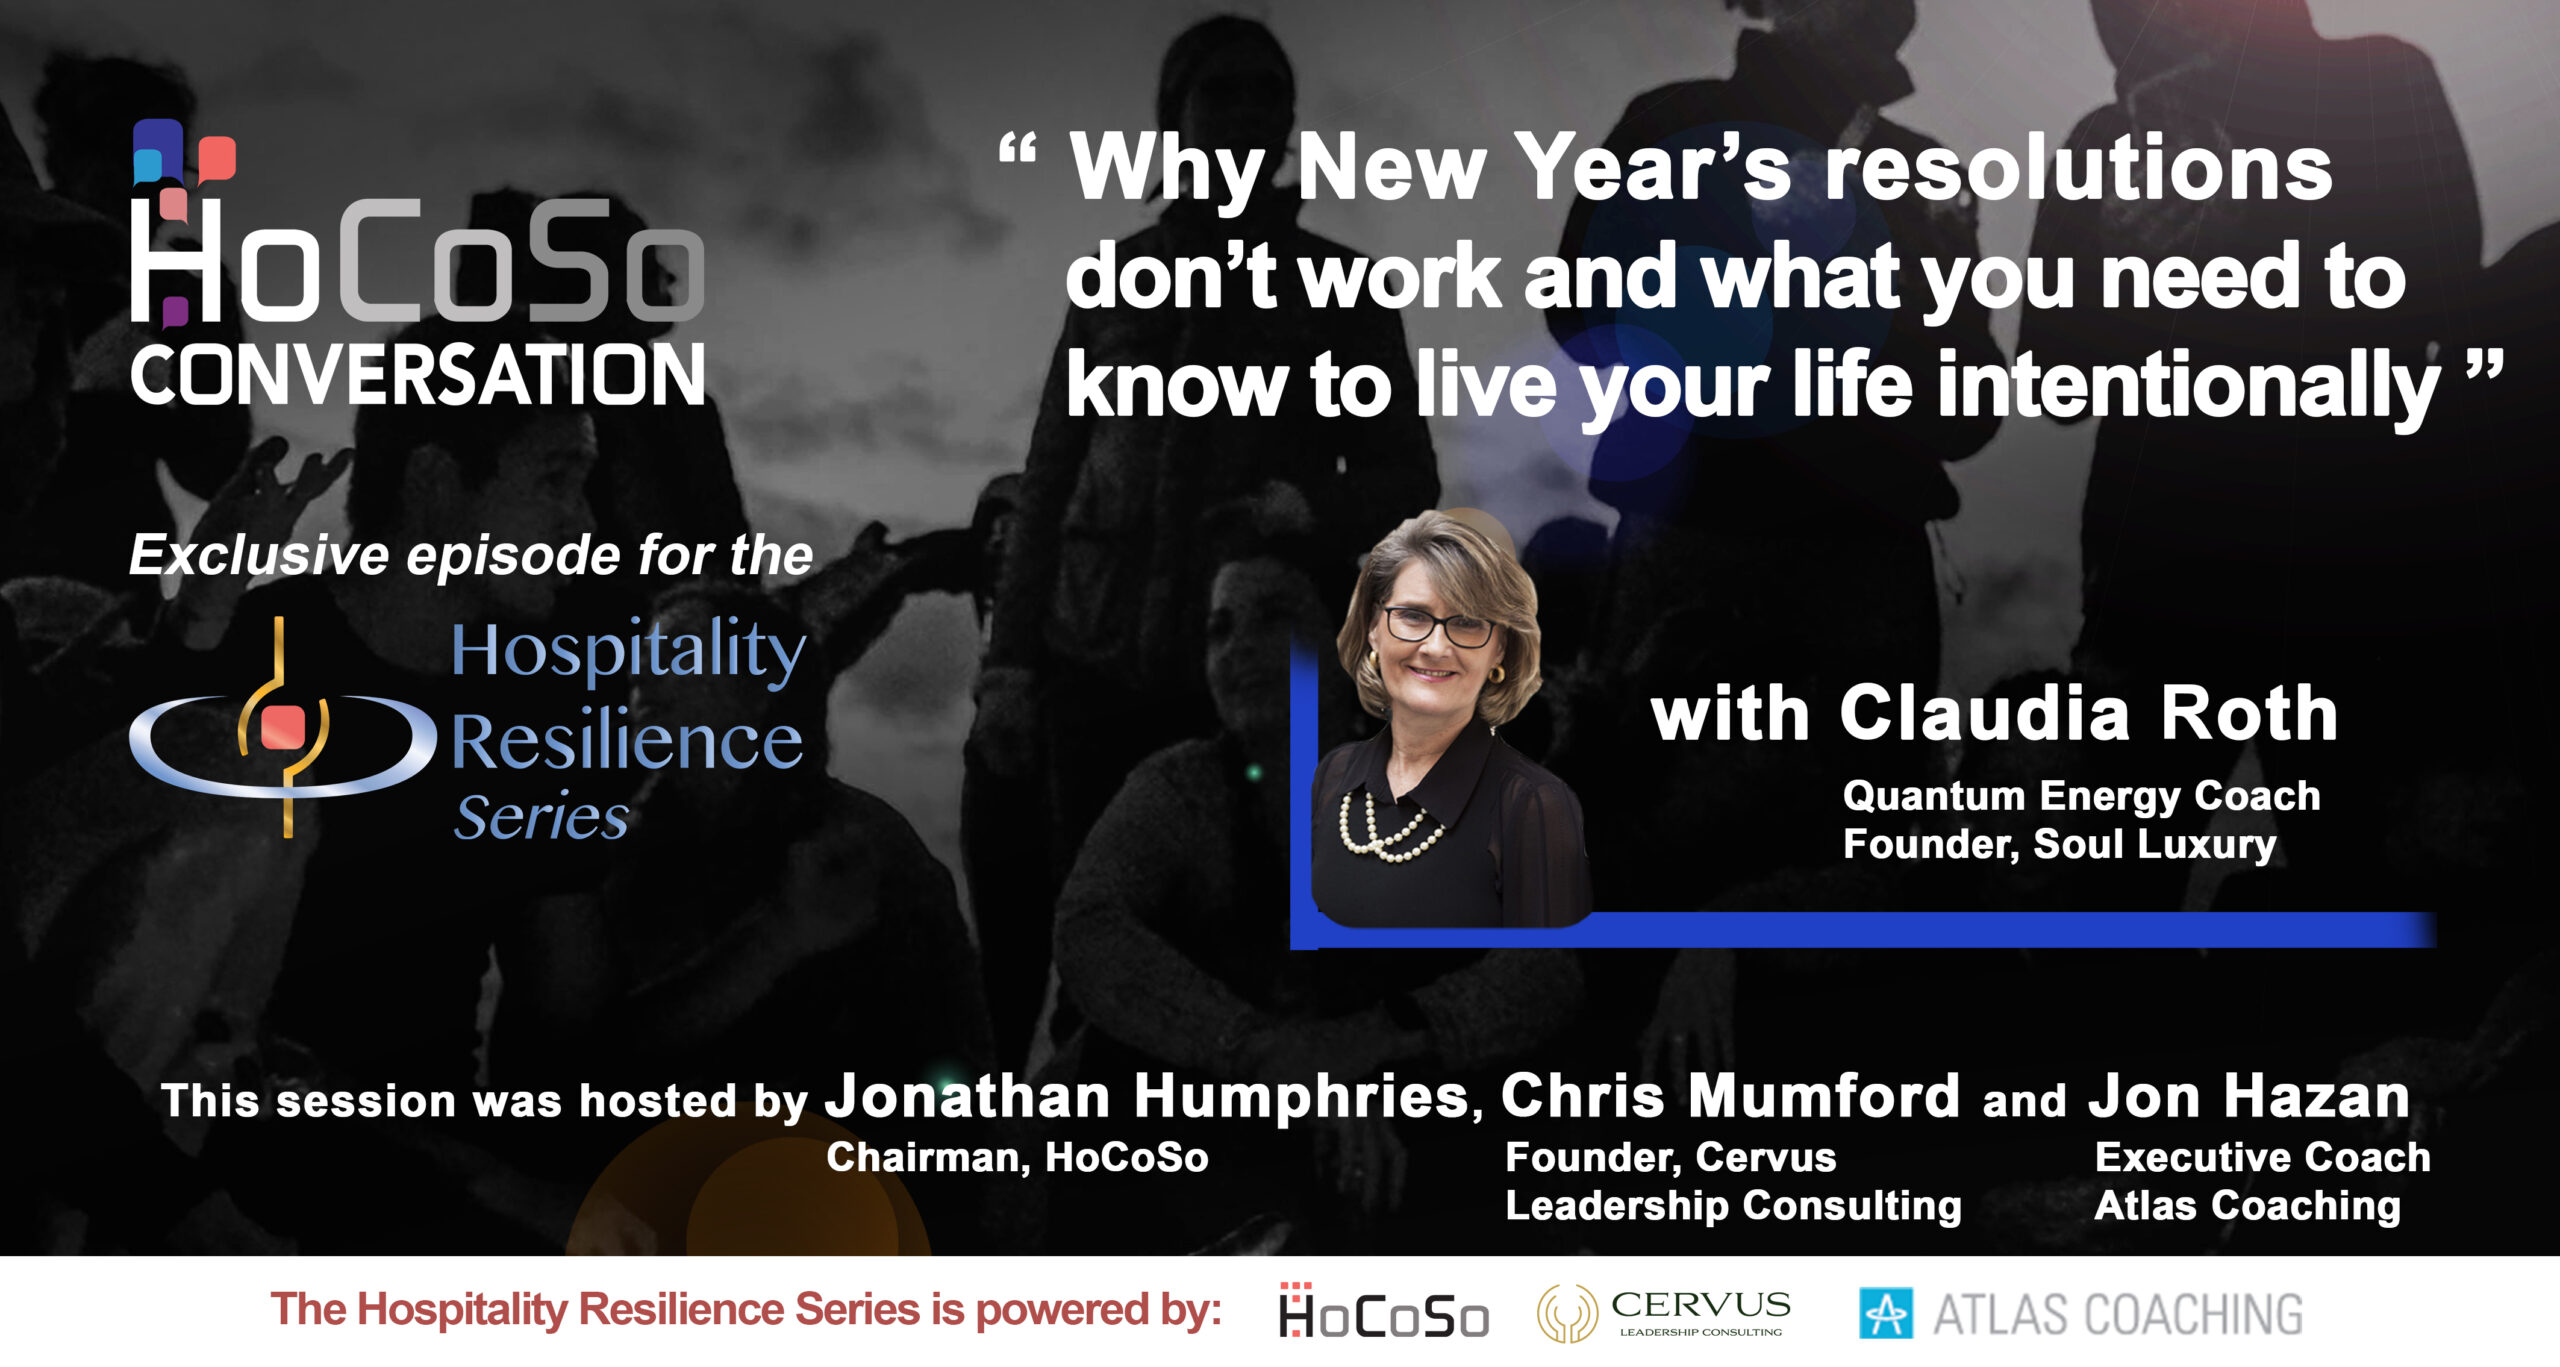 HoCoSo CONVERSATION - Live your life intentionally - with Claudia Roth